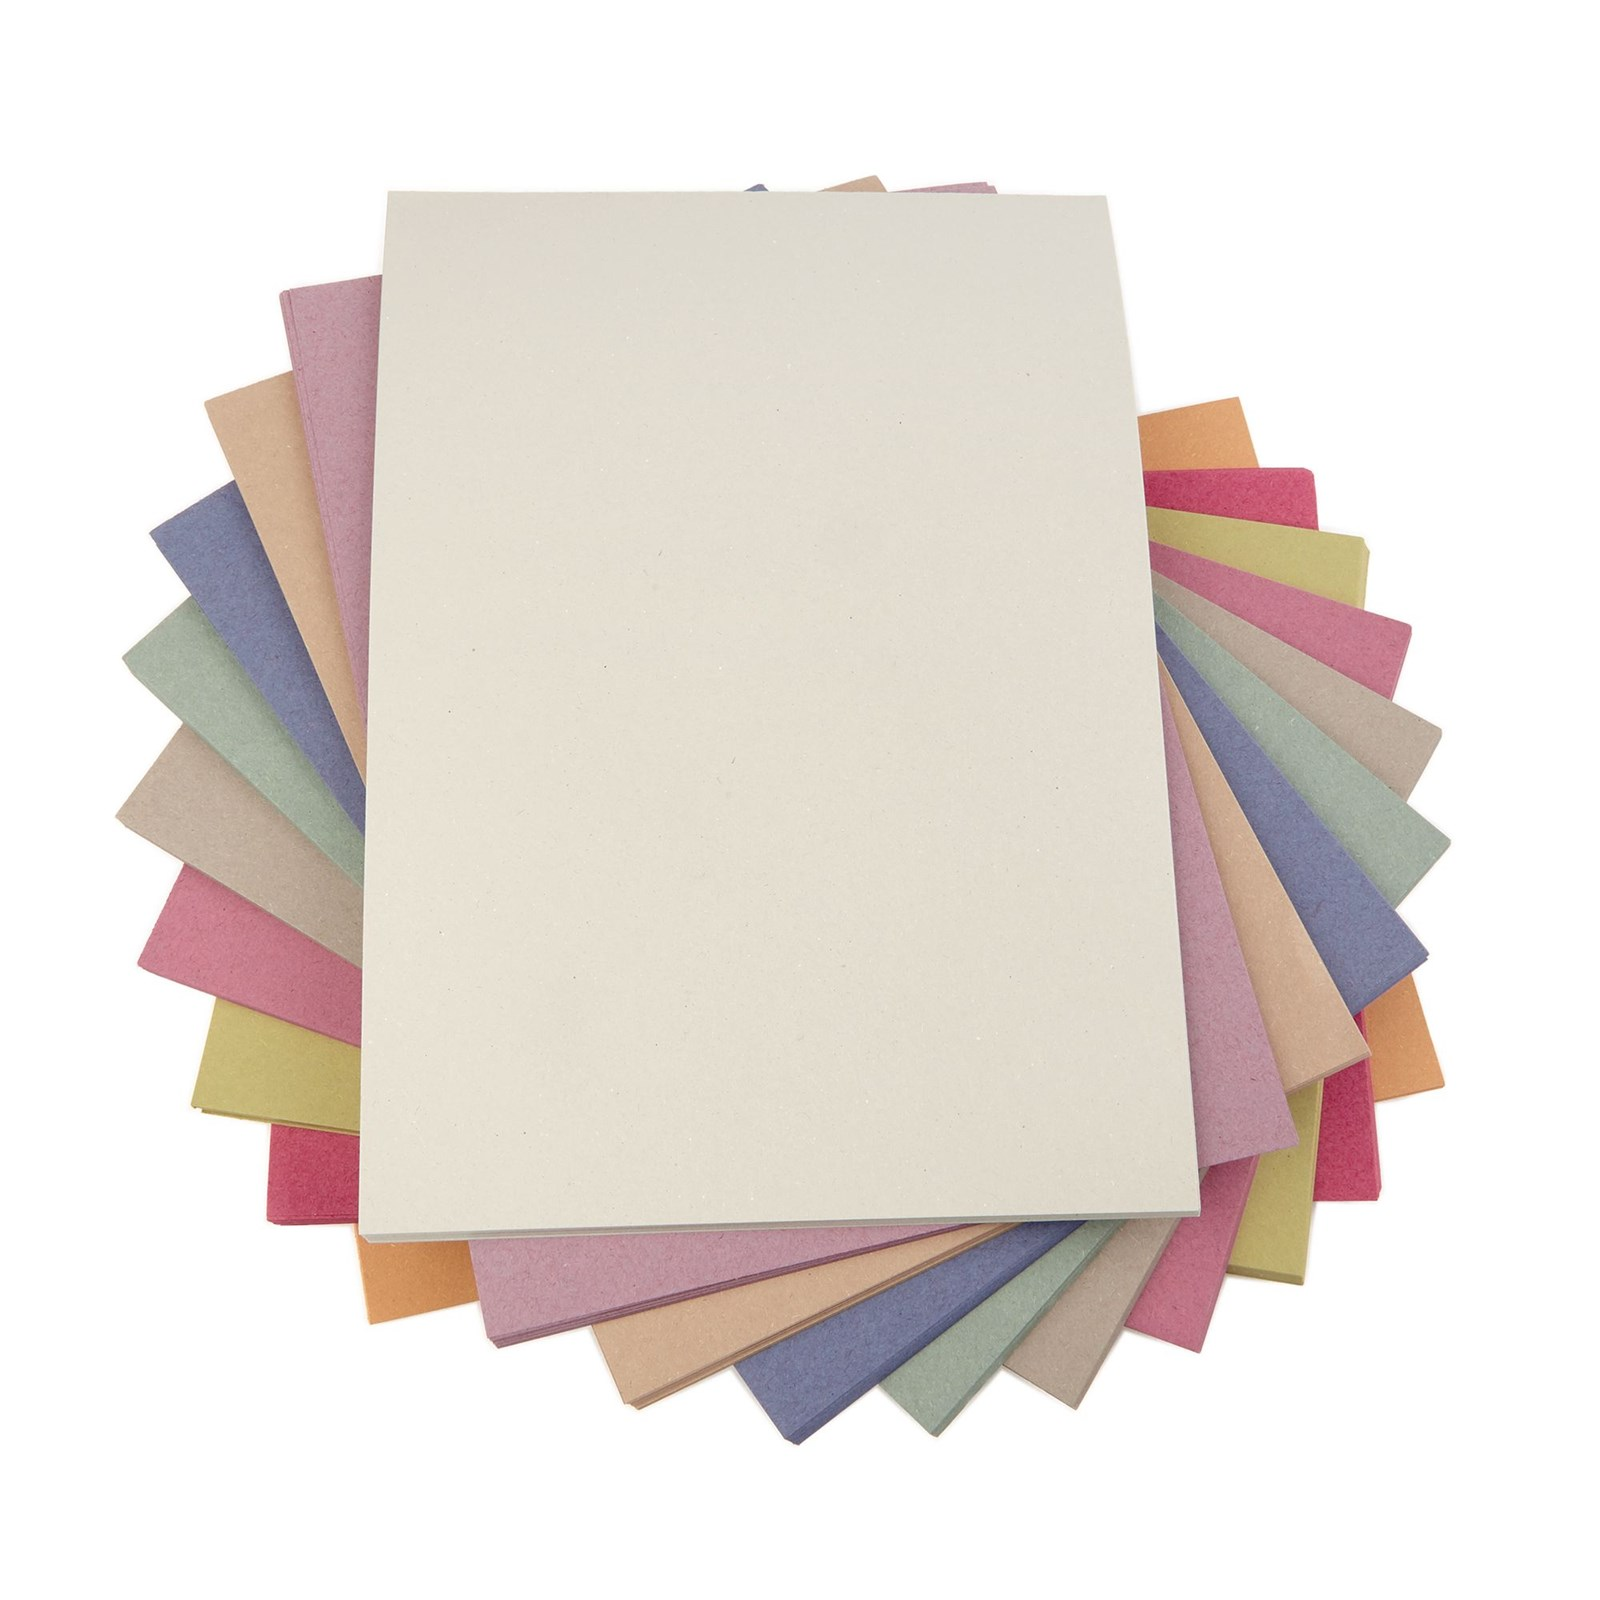 a1 paper Check out our wide range of paper including plotter paper for your copying, printing, presentation or craft requirements shop online with officemax today.